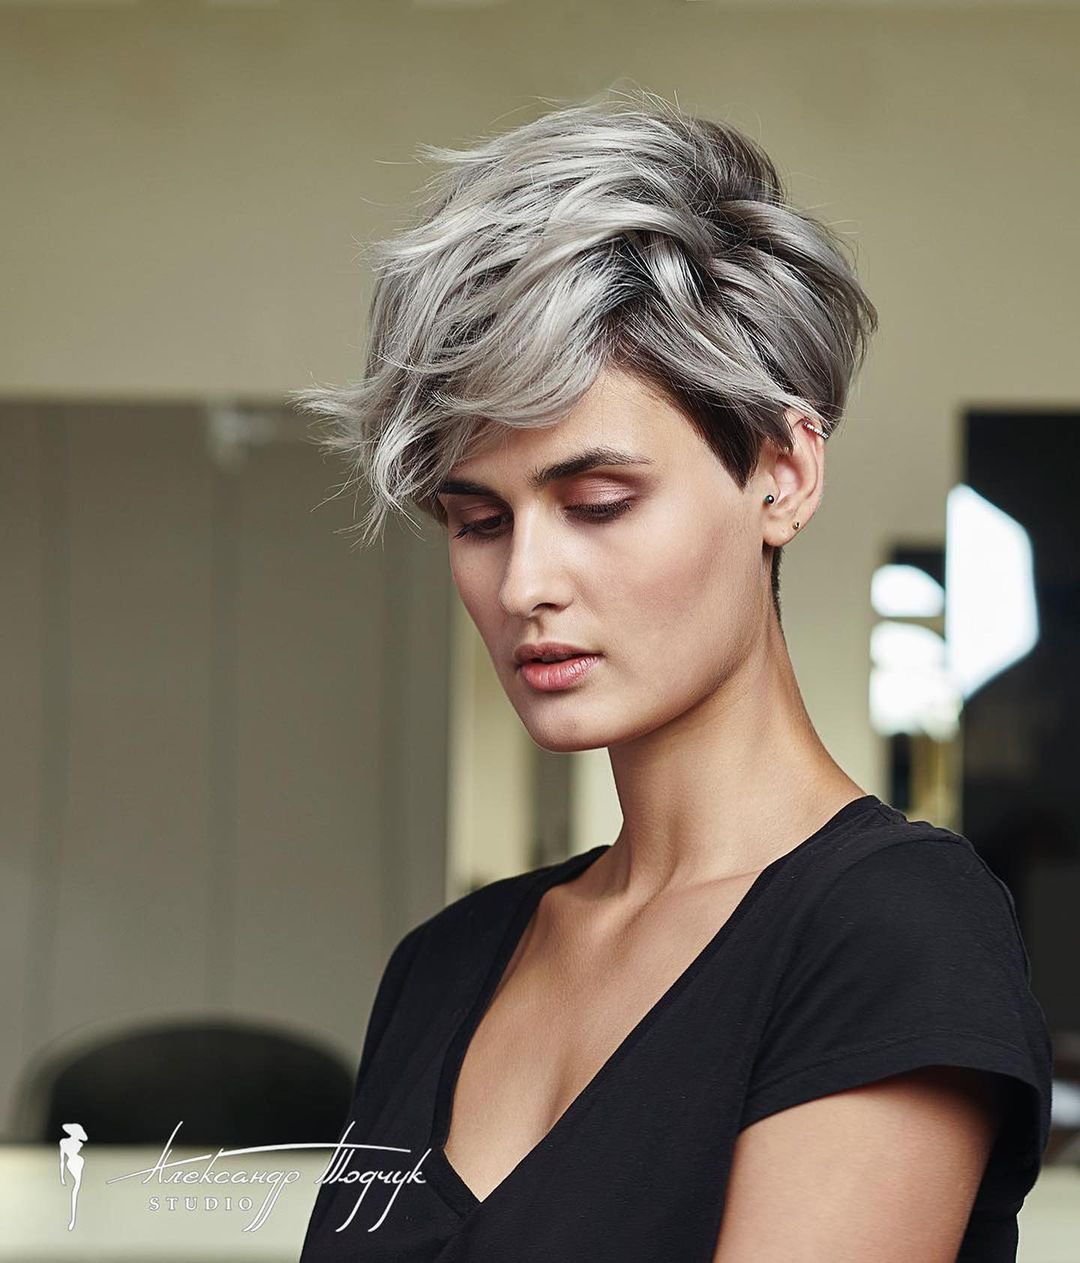 10 Pixie Cut & Color Ideas - Outrageous New Short Hairstyles